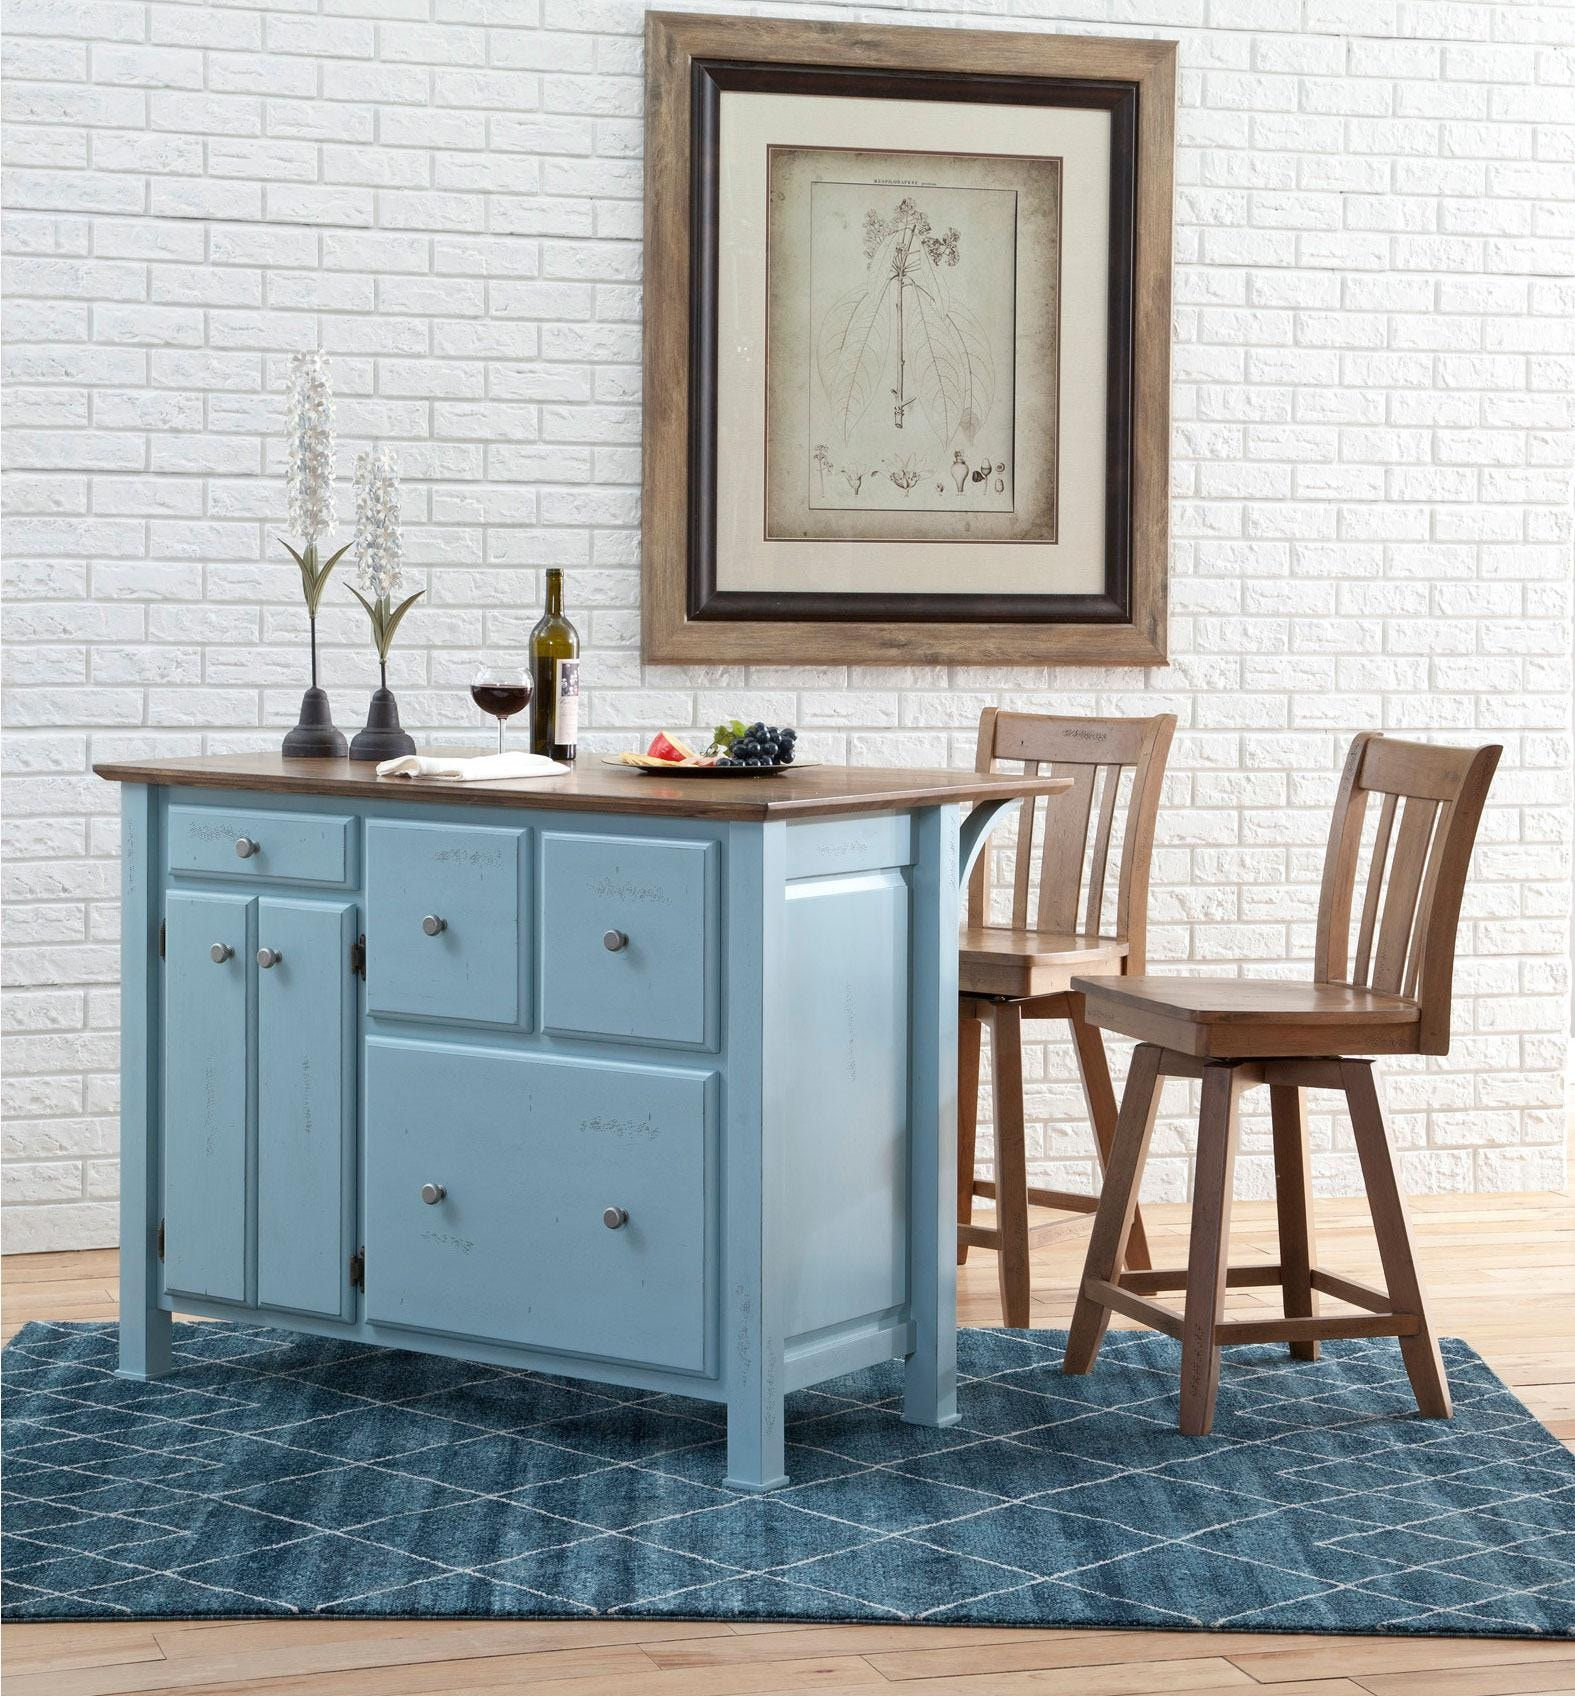 Whitewood Industries Dining Room Kitchen Island with Breakfast Bar